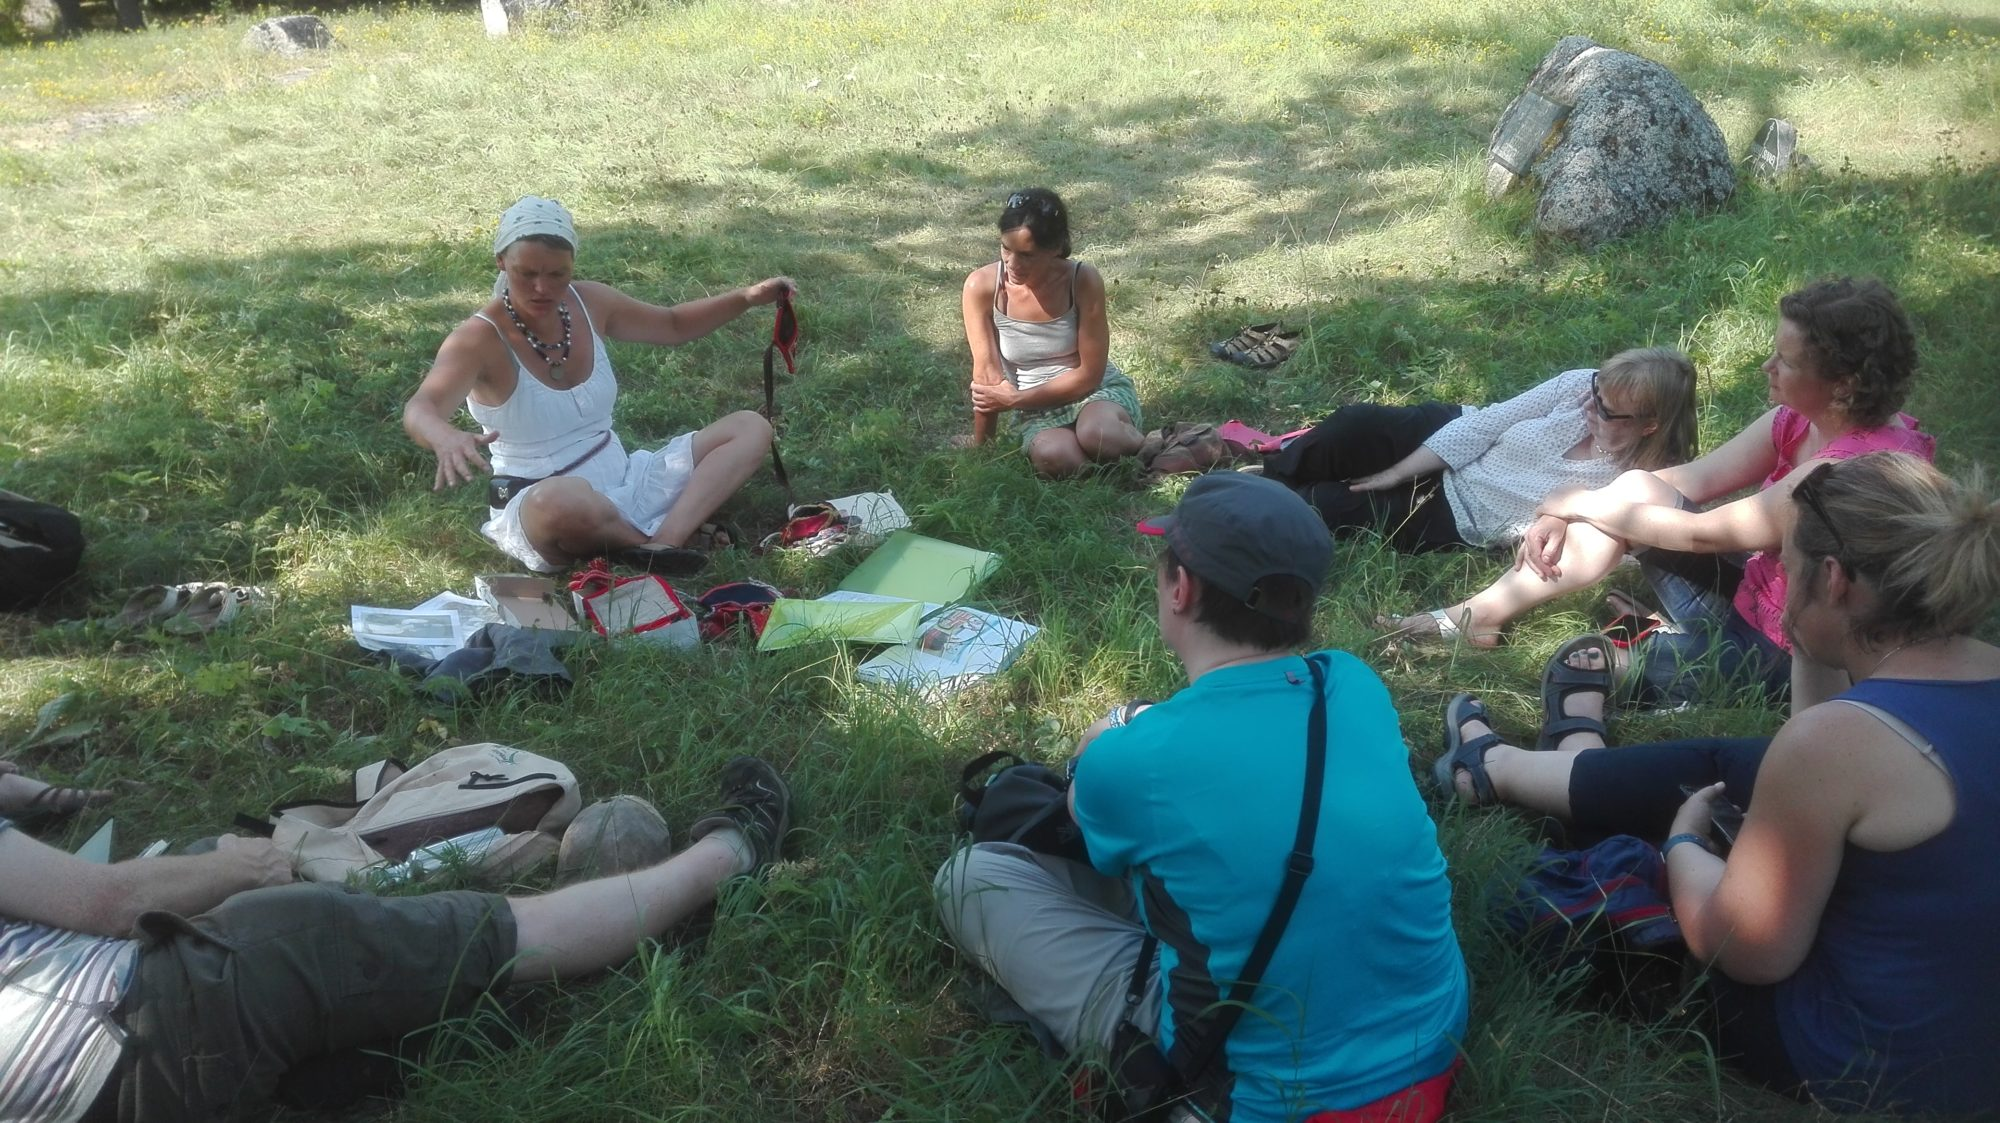 outdoor-lecture-on-traditional-costumes-of-Saaremaa